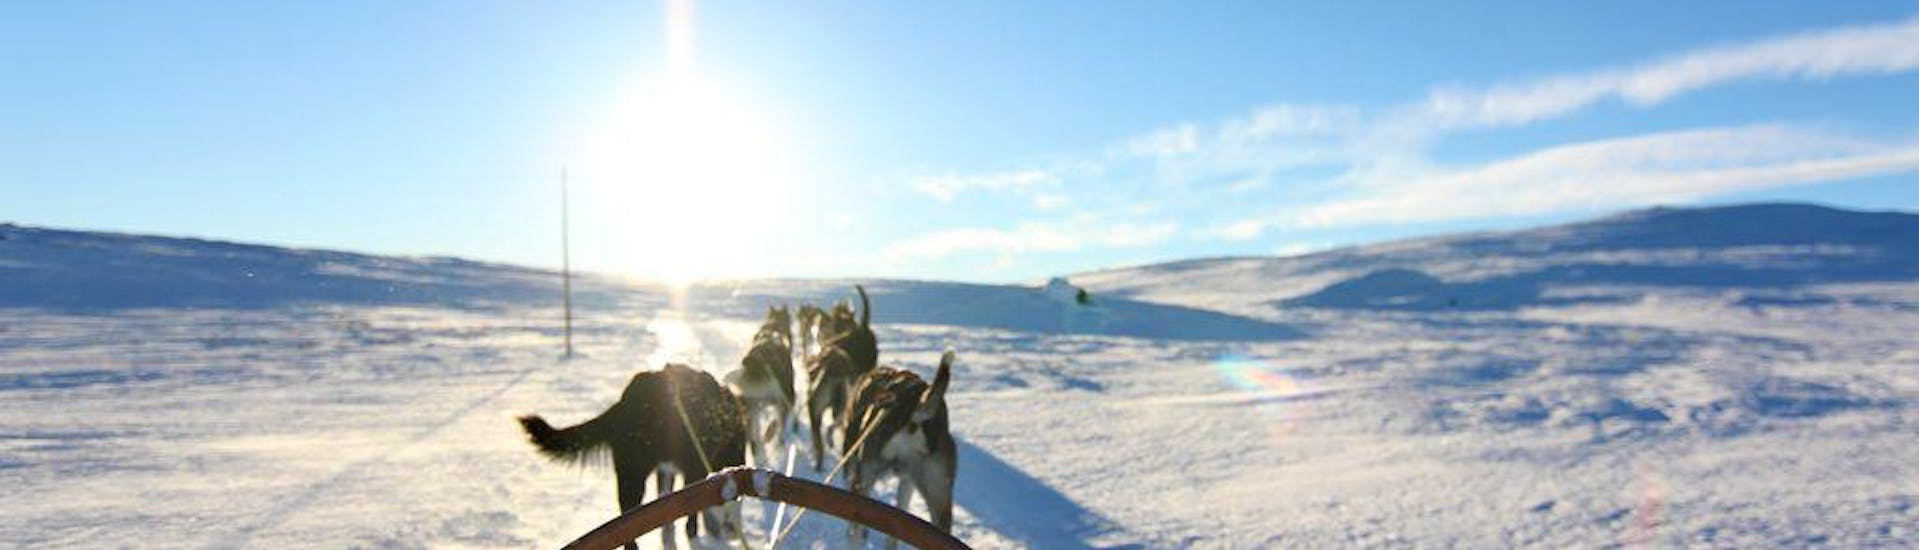 The view from the sledge over the dogs during Husky Sledding in Geilo - 10 km organized by Geilo Husky